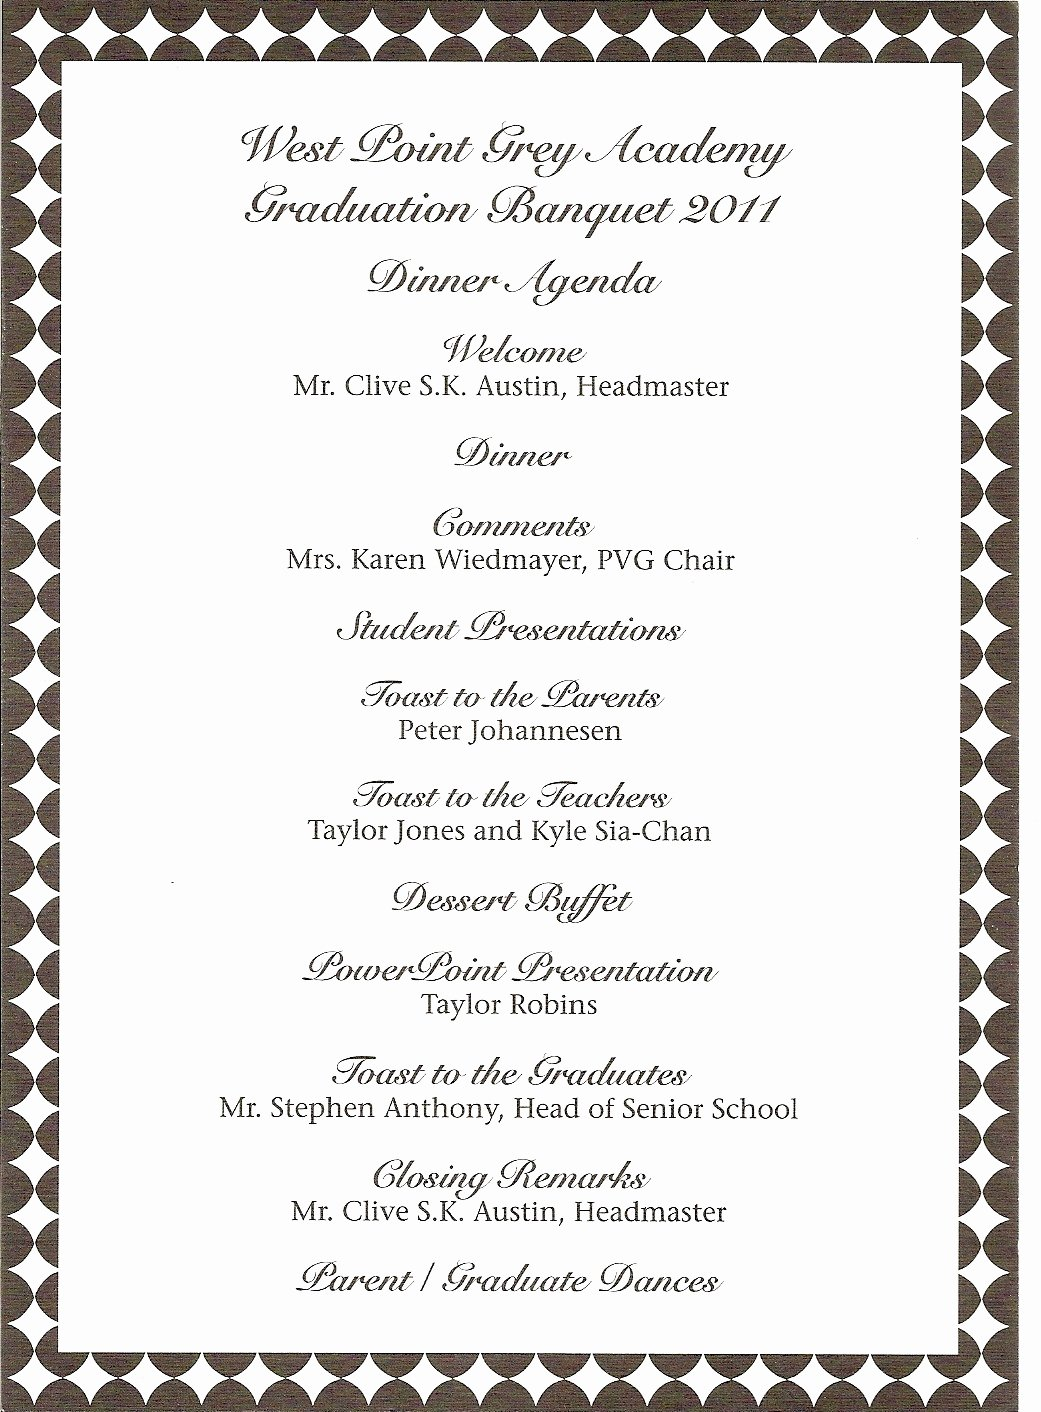 Banquet Program Template Awesome Donna S Report Wpga Graduation Banquet Teddy